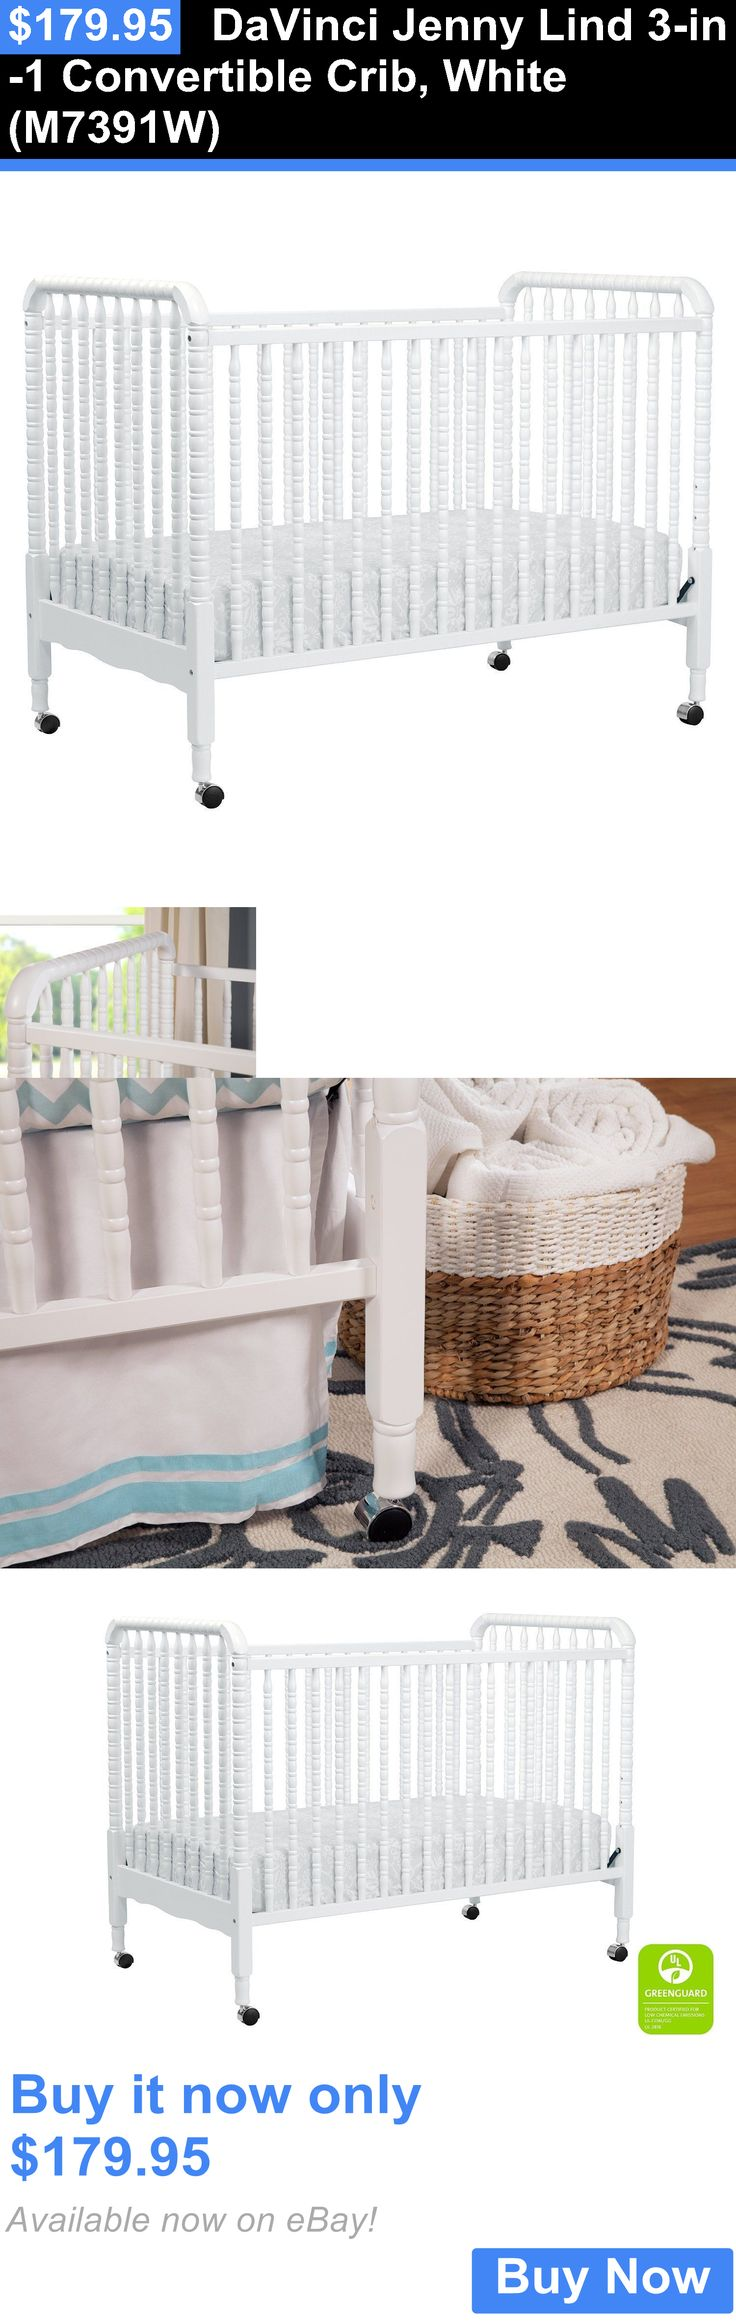 Baby Nursery: Davinci Jenny Lind 3-In-1 Convertible Crib, White (M7391w) BUY IT NOW ONLY: $179.95